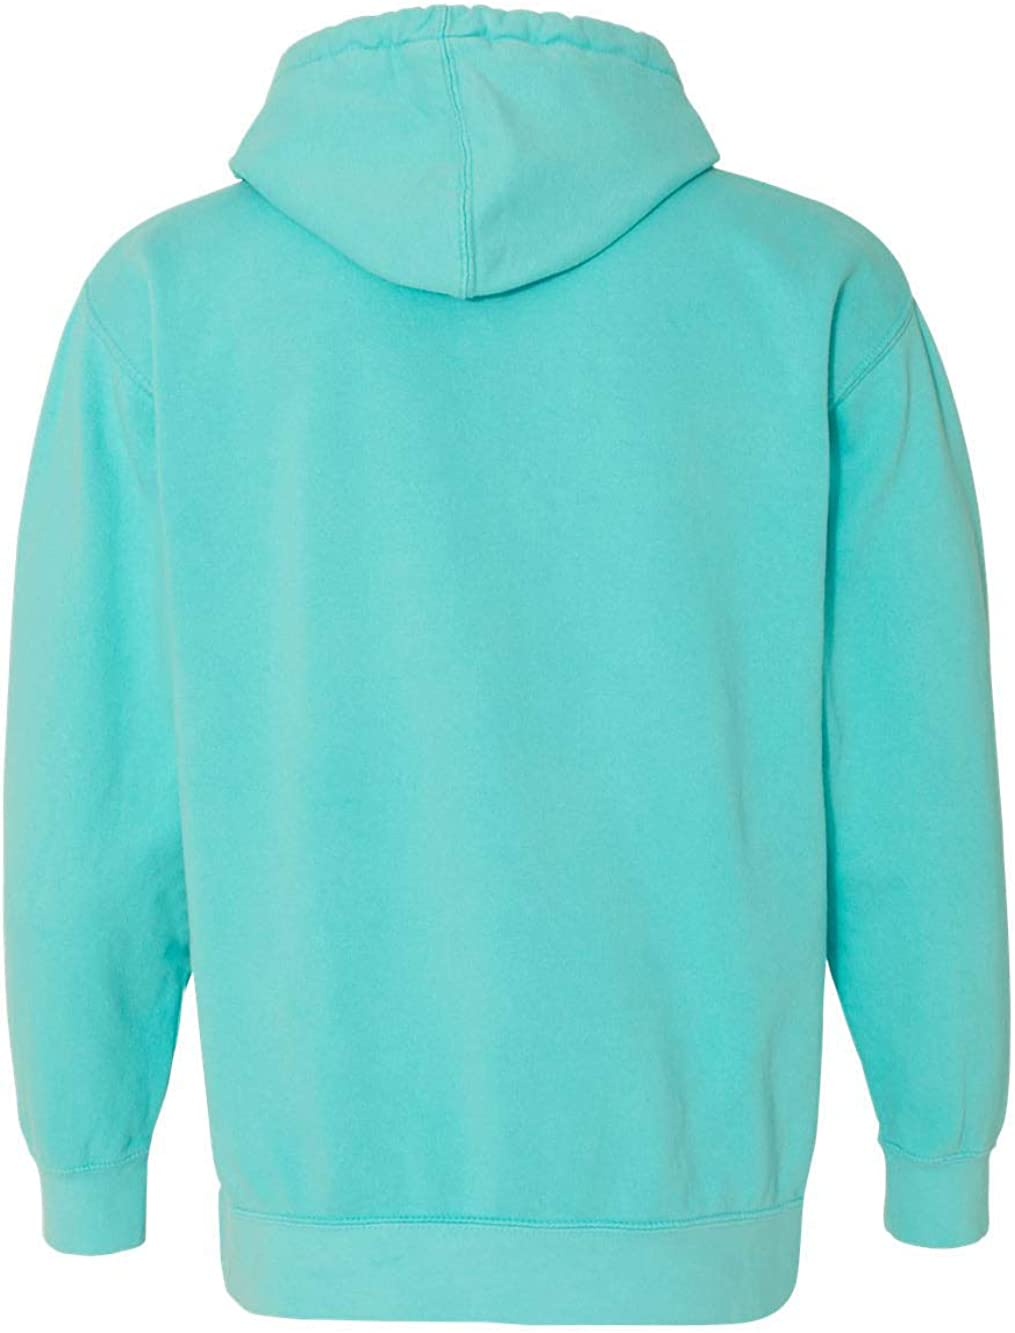 Comfort Colors Garment Dyed Hooded Pullover Sweatshirt 1567